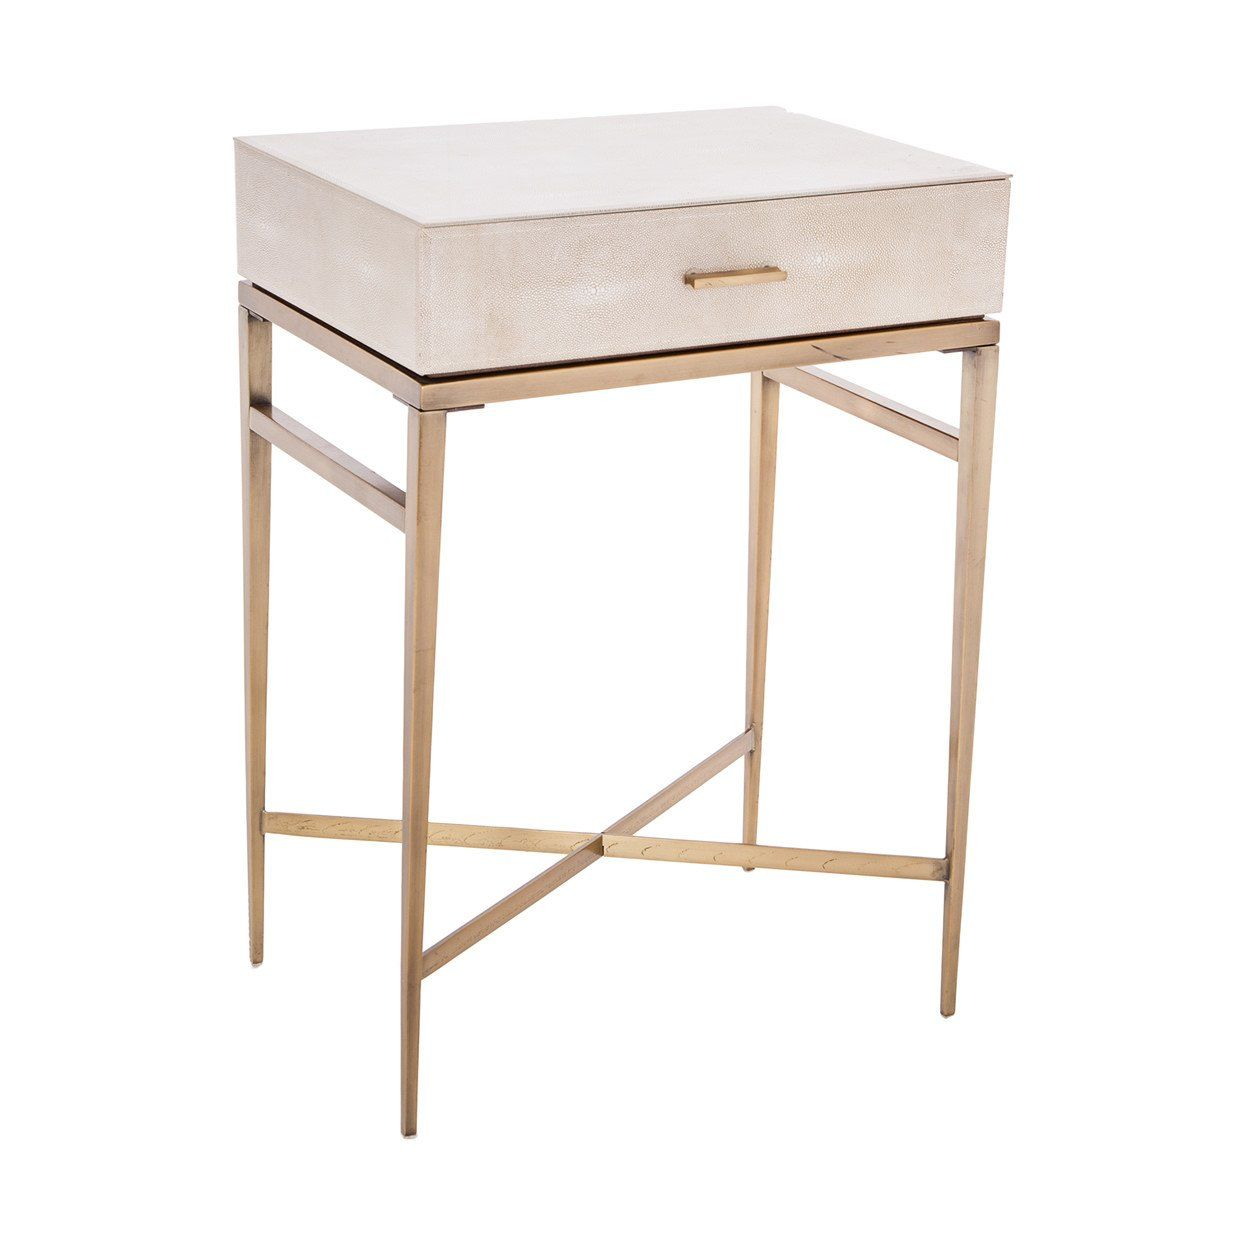 lucile taupe shagreen gold side table ping accent with drawer shropshire design kitchen console painted bedside chests threshold dining cover oval shape pier one outdoor pillows